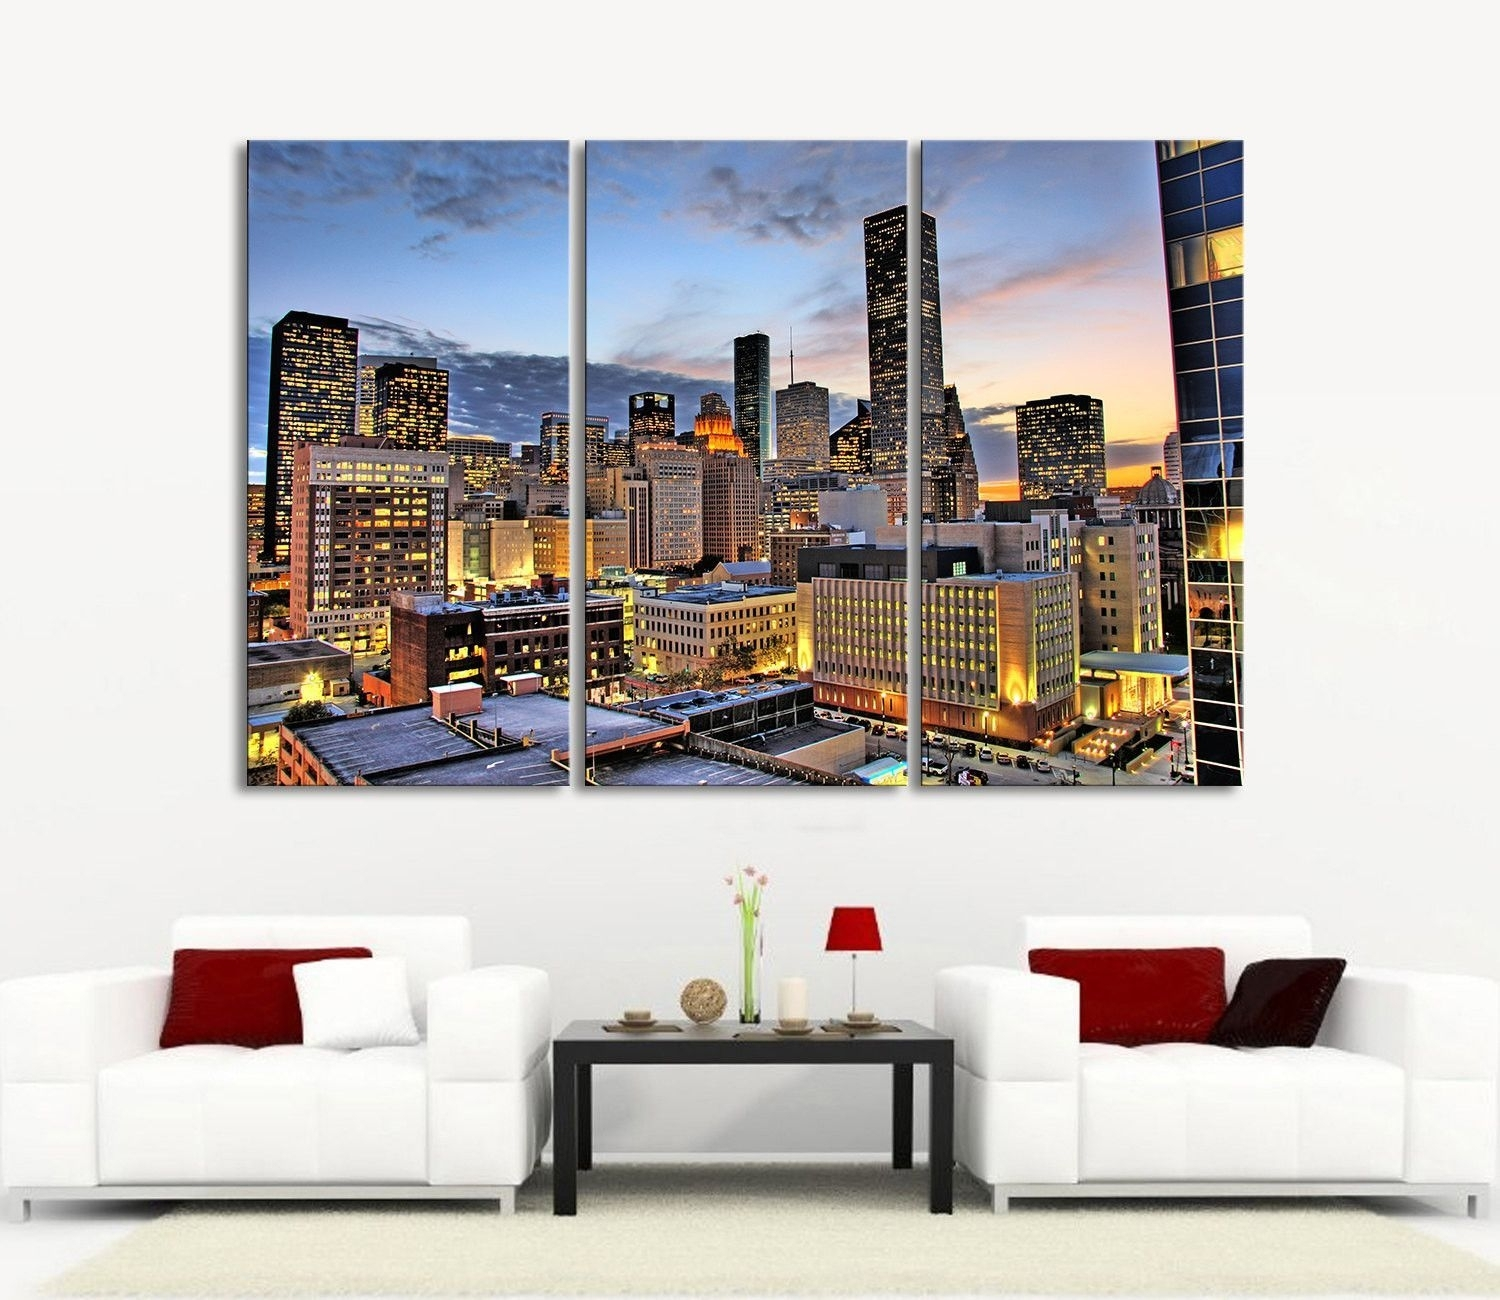 Large Wall Art Canvas Prints Houston Night Landscape Canvas Print Intended For Most Recent Houston Canvas Wall Art (View 13 of 15)